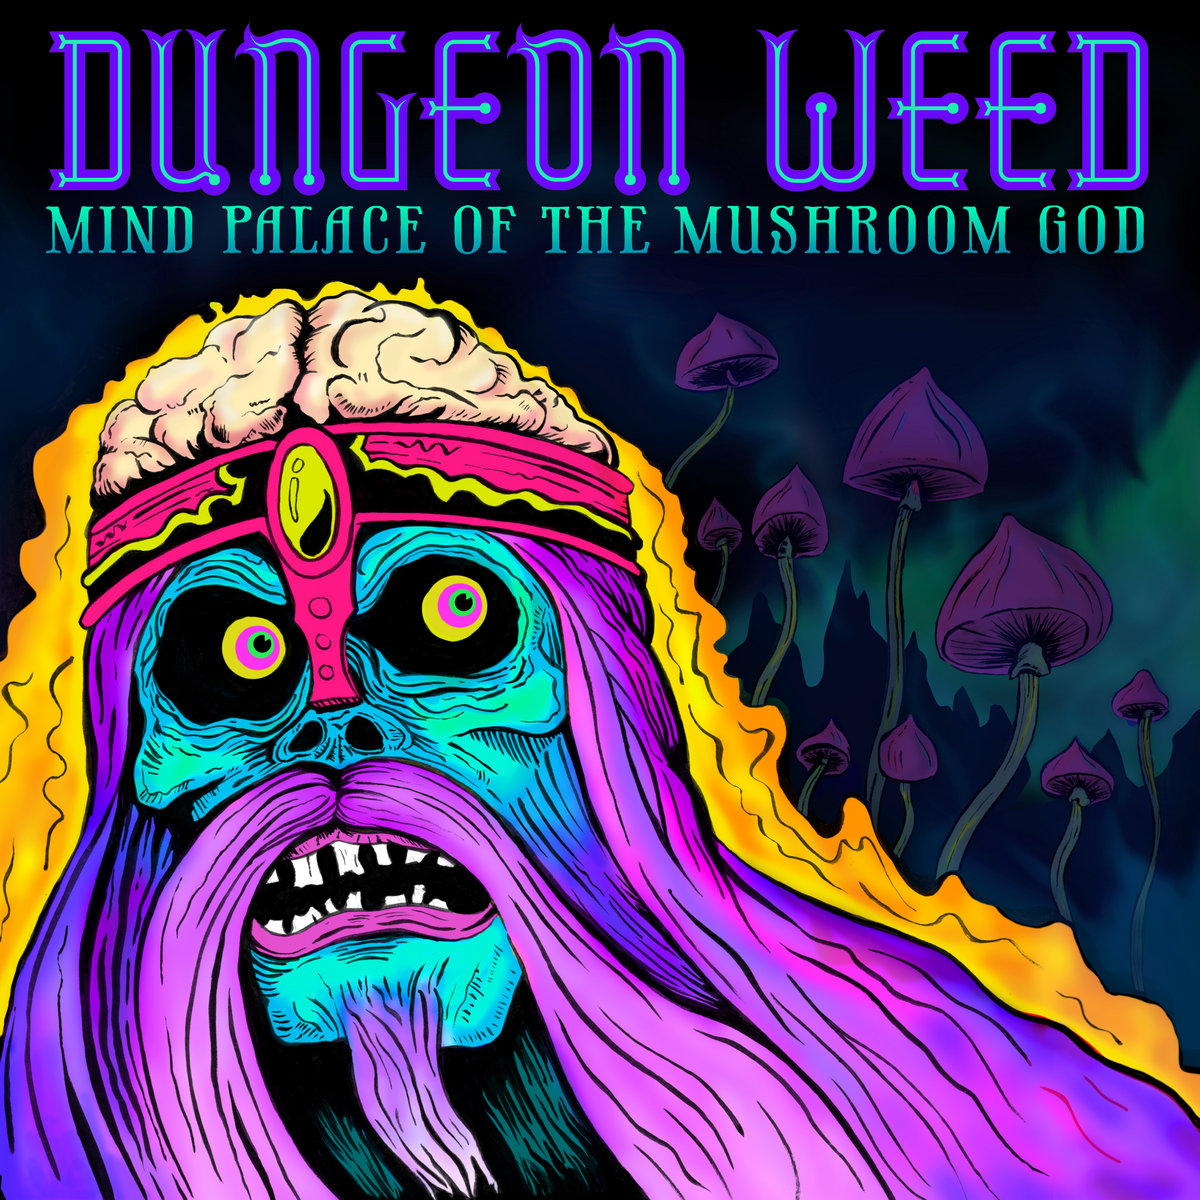 Dungeon Weed Mind Palace of the Mushroom God